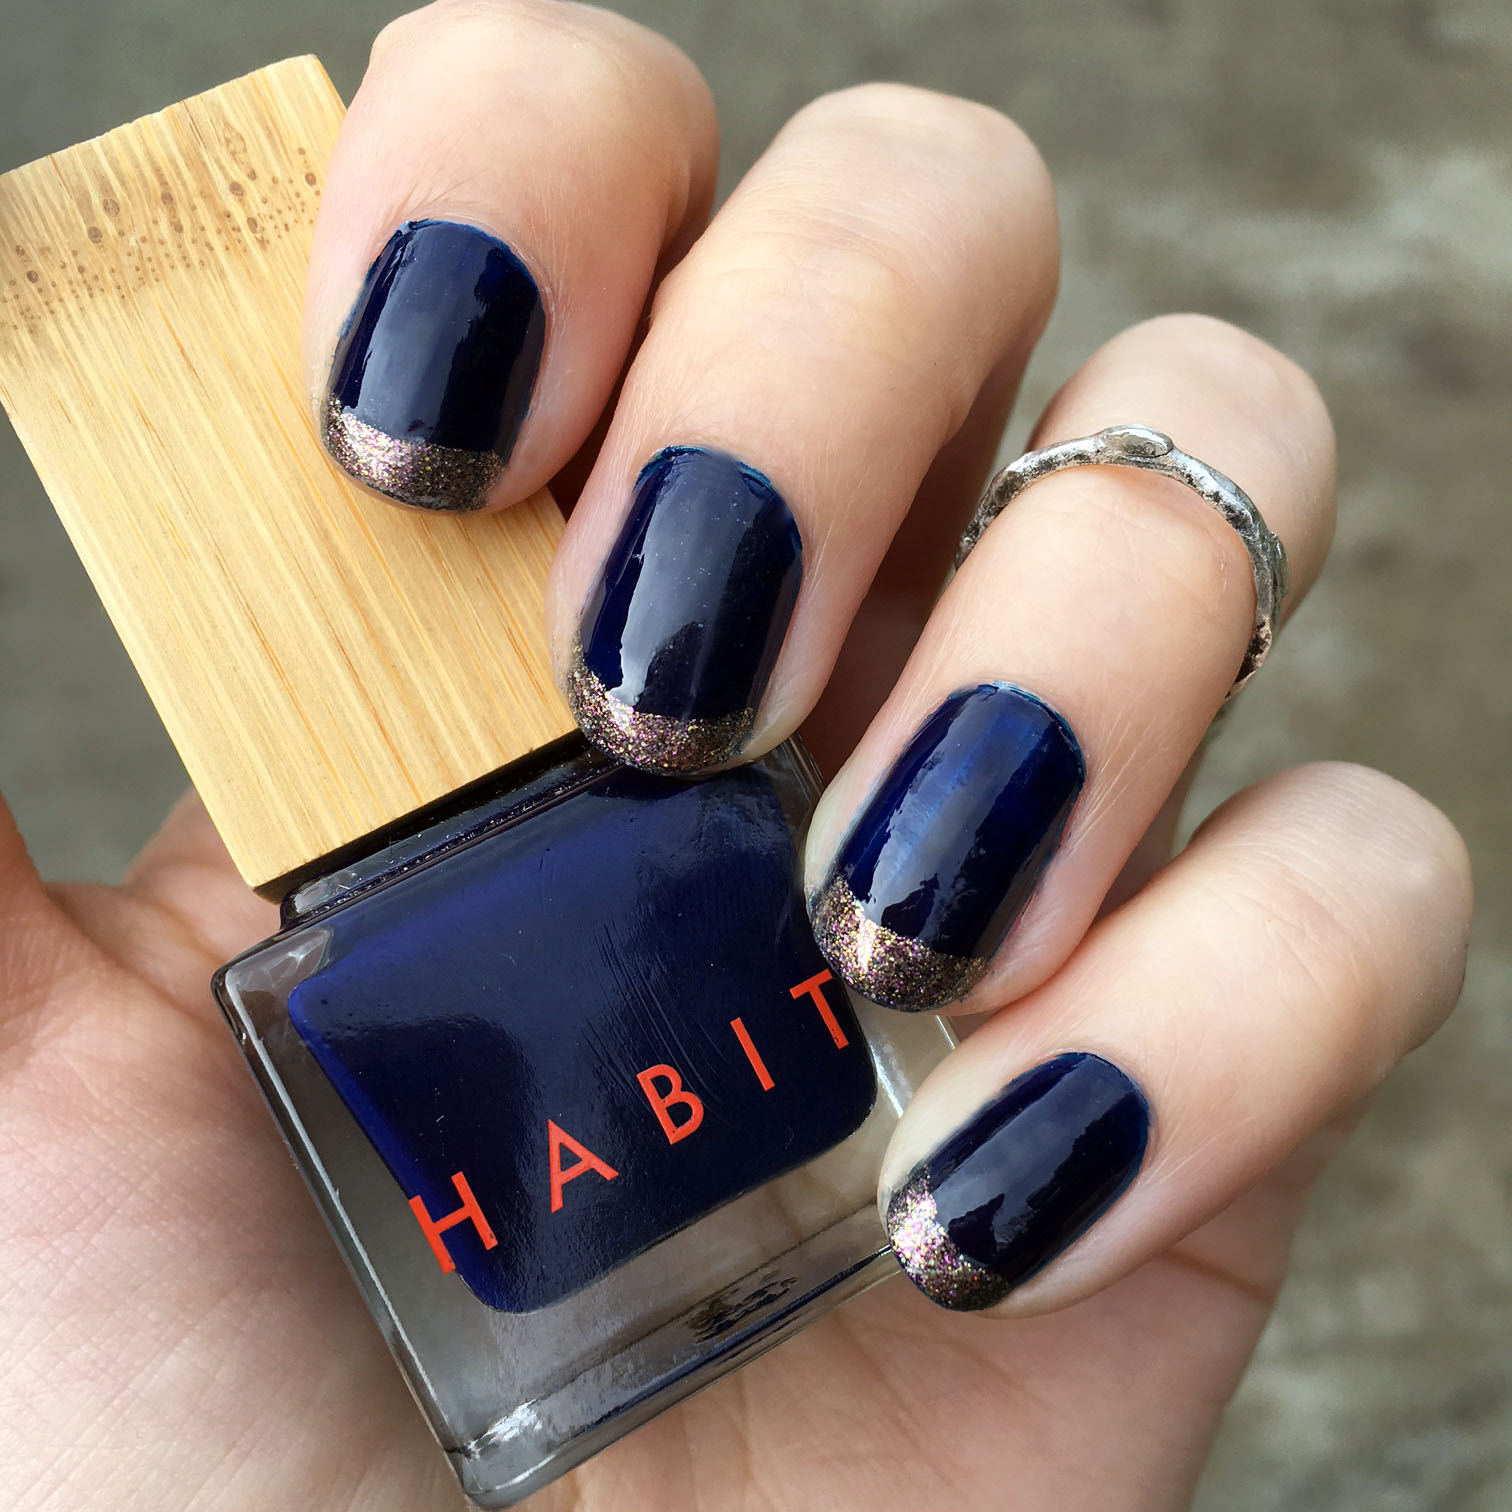 HABIT Deep Sea vegan nail polish